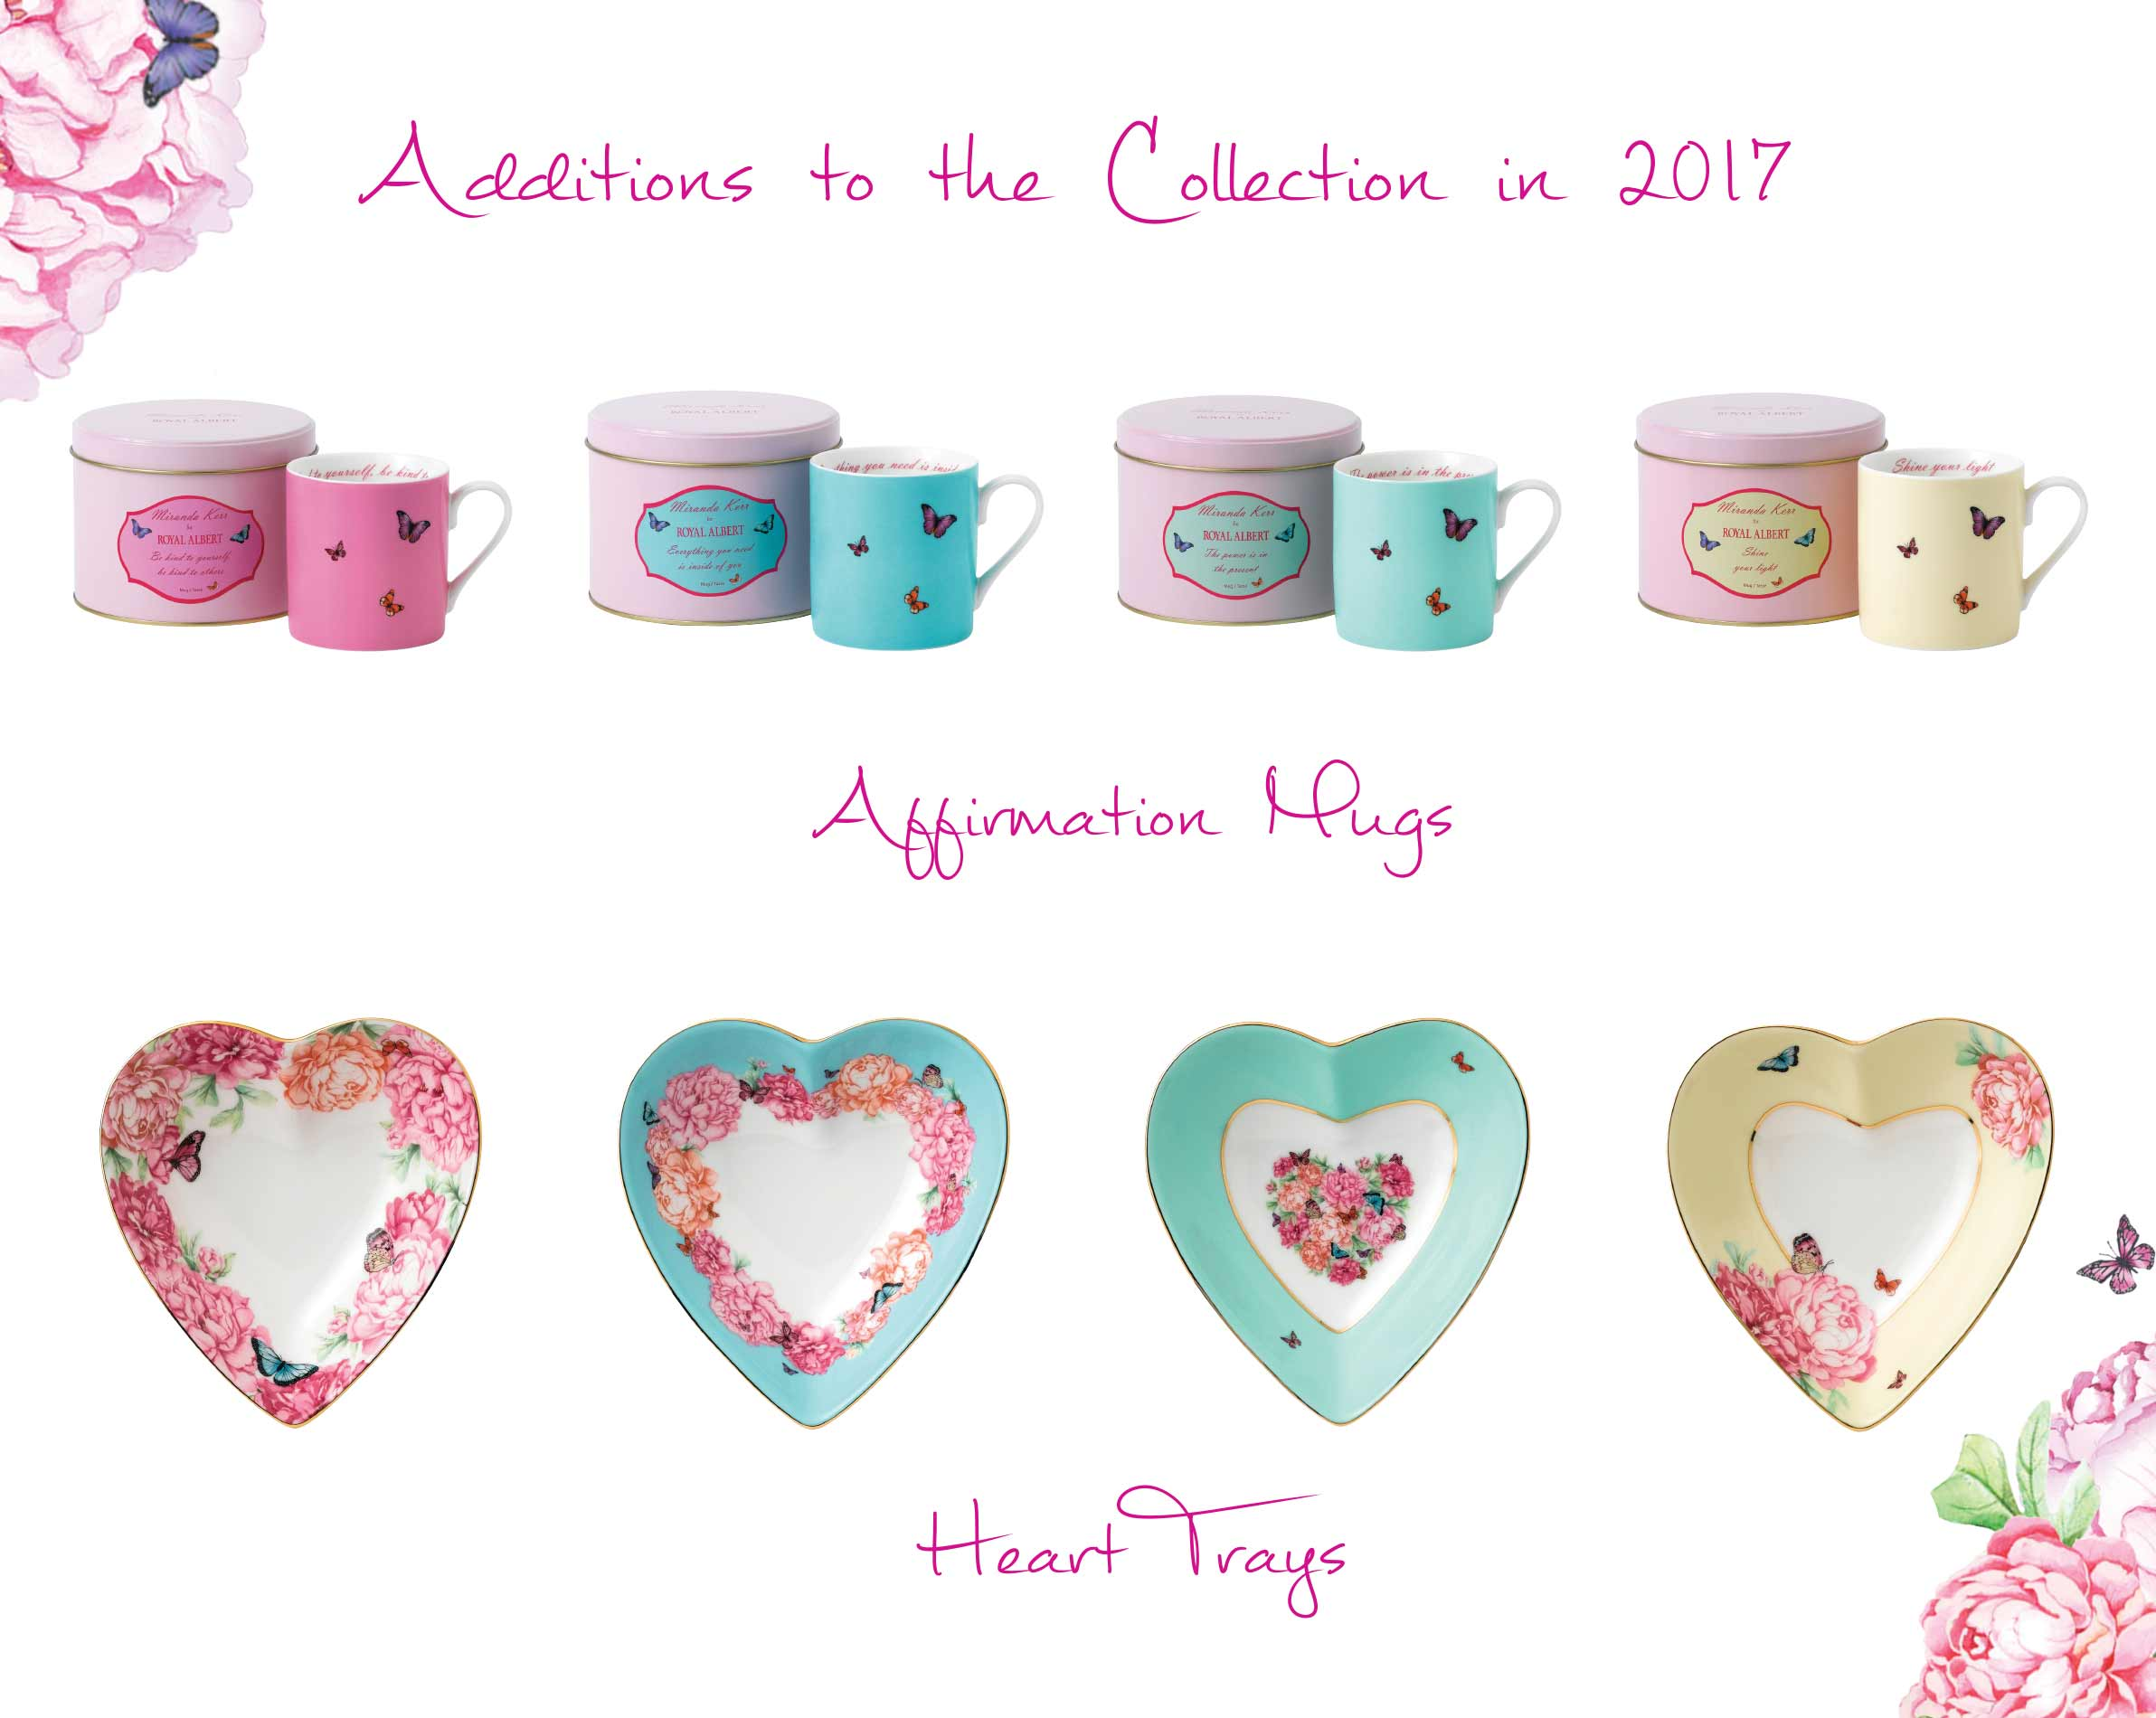 Additions to the Collection in 2017: Affirmation Mugs & Heart Trays